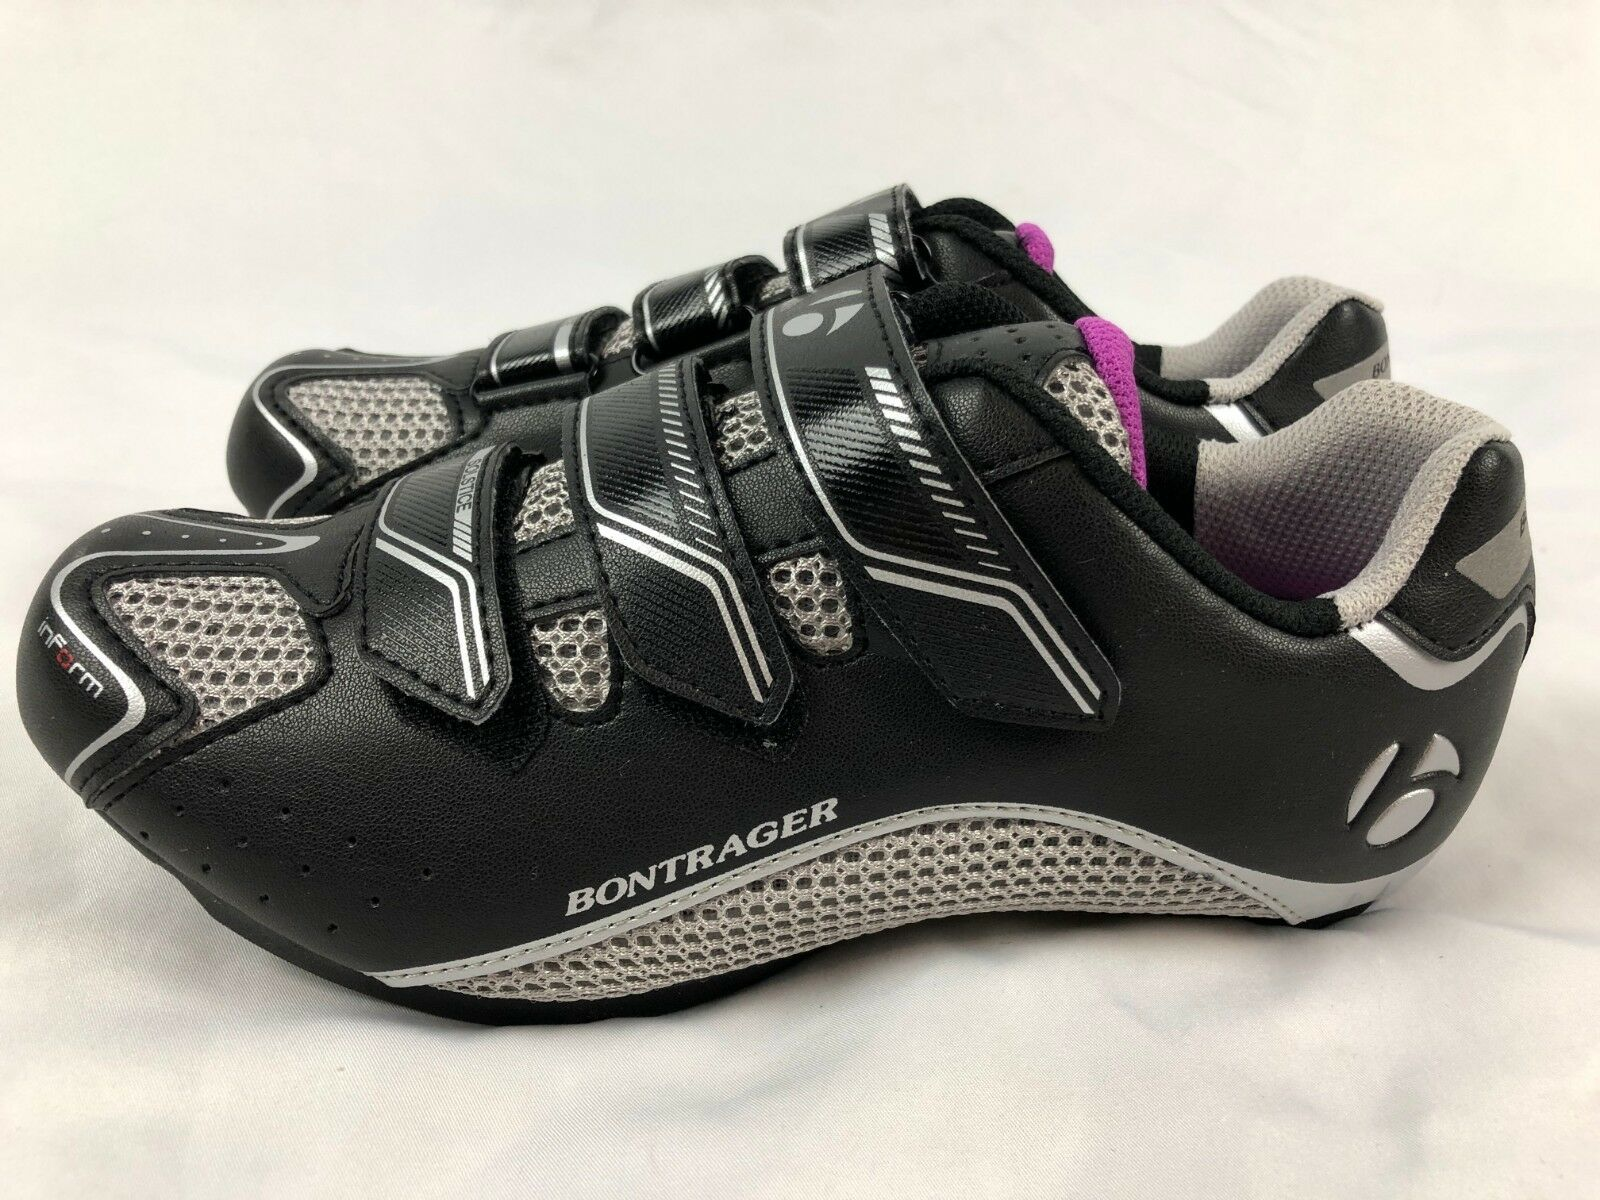 Bontrager Soltsitce Road Women's Cycling shoes SIZE US 5.5 (3k)